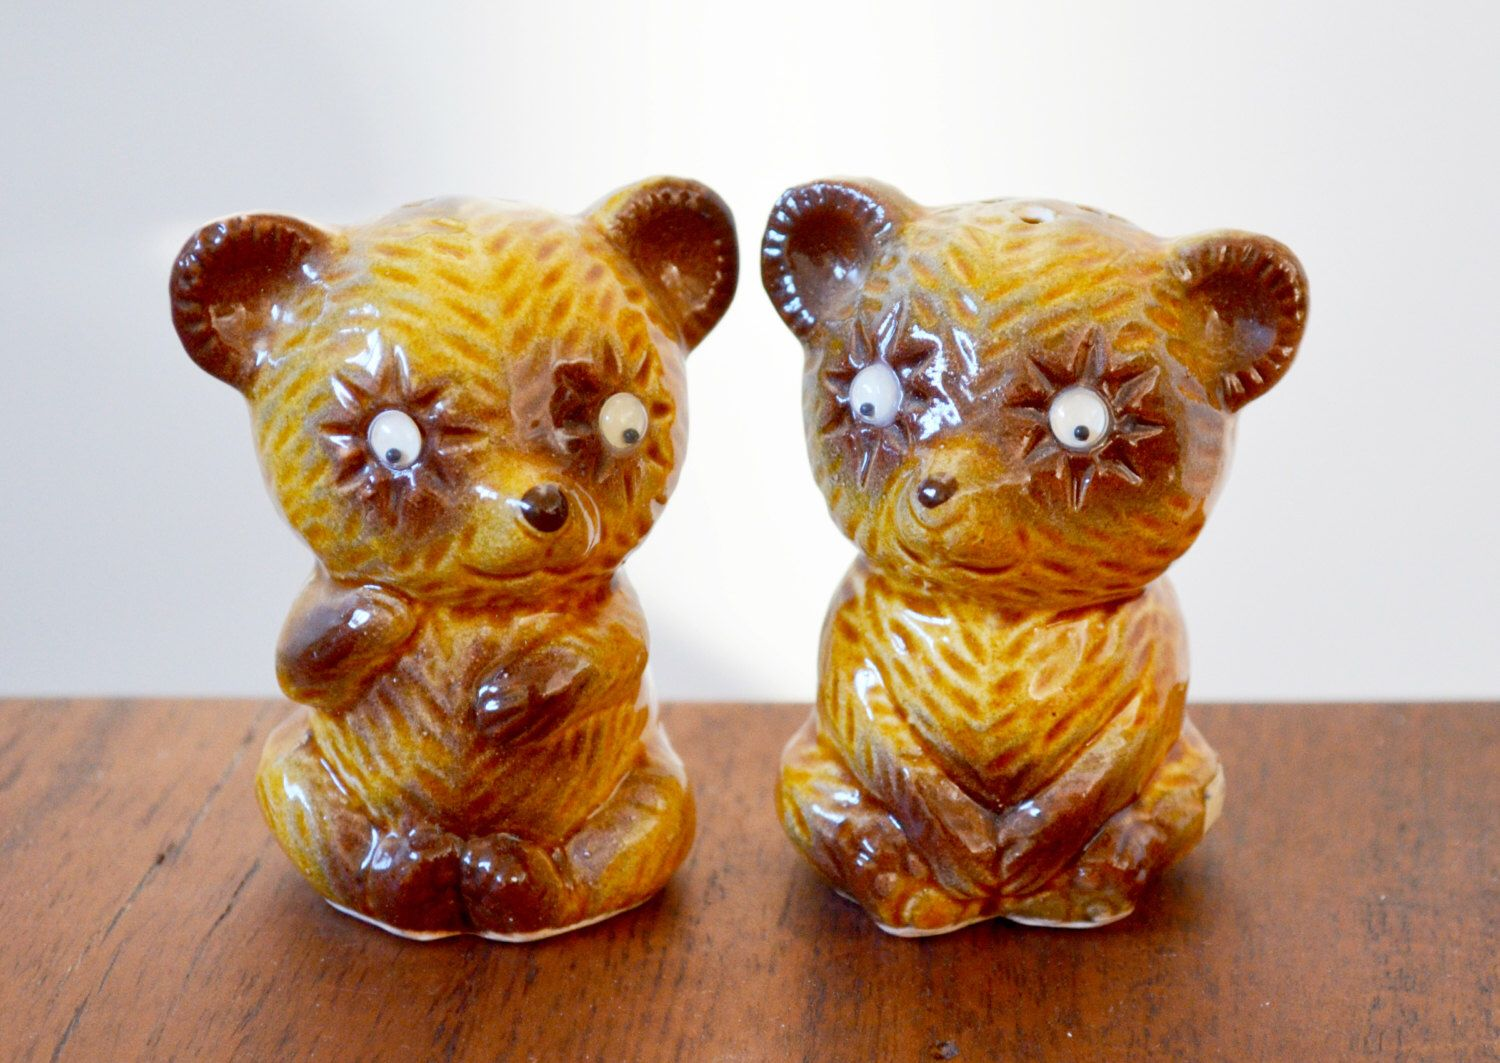 Vintage Bear salt and pepper shakers from the 1970s, googly eyes, made in Japan, imported by Irwin Specialties by Trashtiques on Etsy https://www.etsy.com/ca/listing/486246517/vintage-bear-salt-and-pepper-shakers